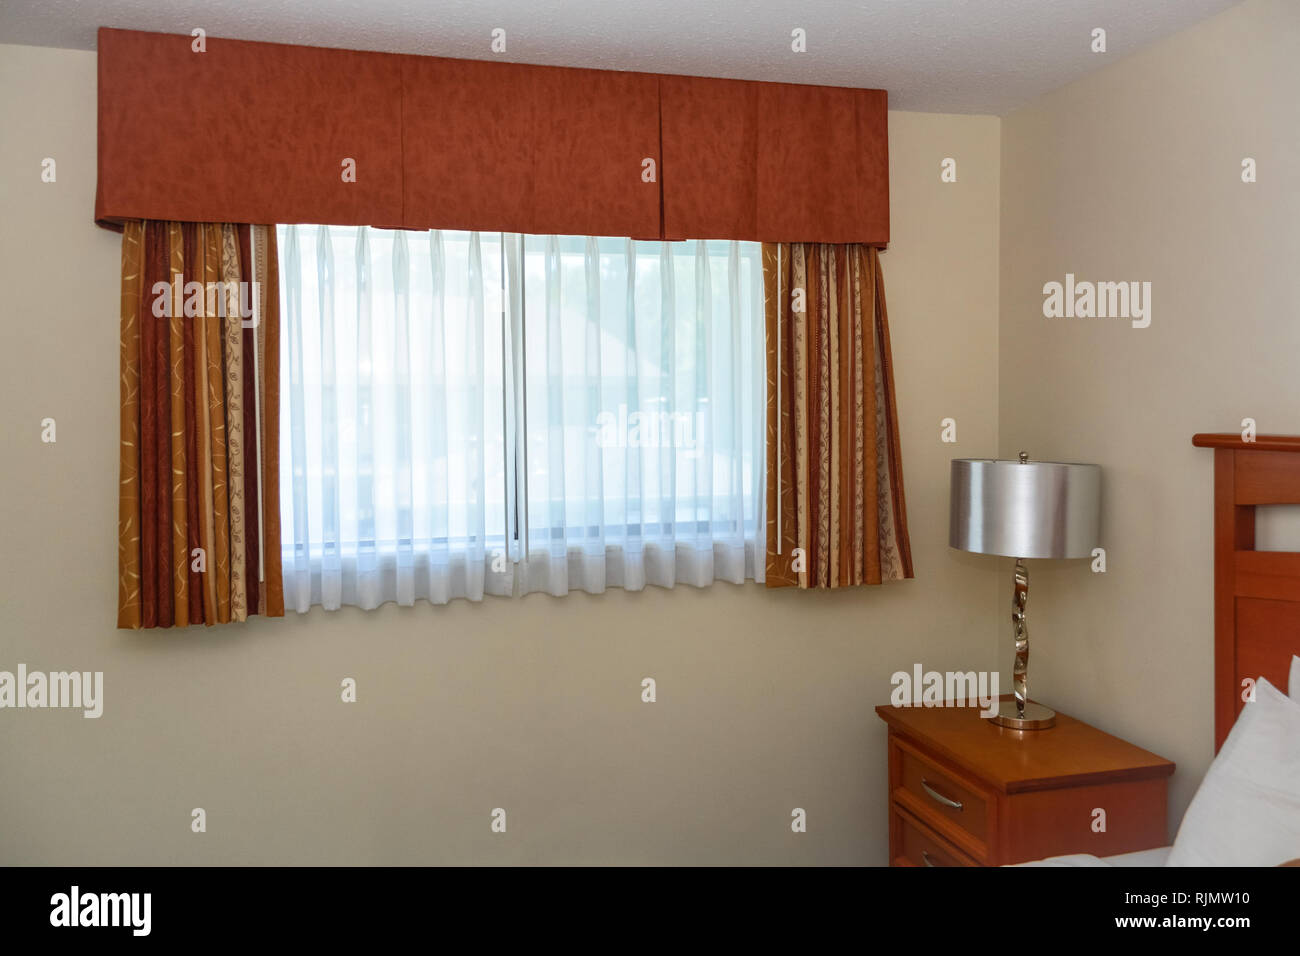 Window With The Curtains And Bedside Table In The Corner Of The Room Stock Photo Alamy